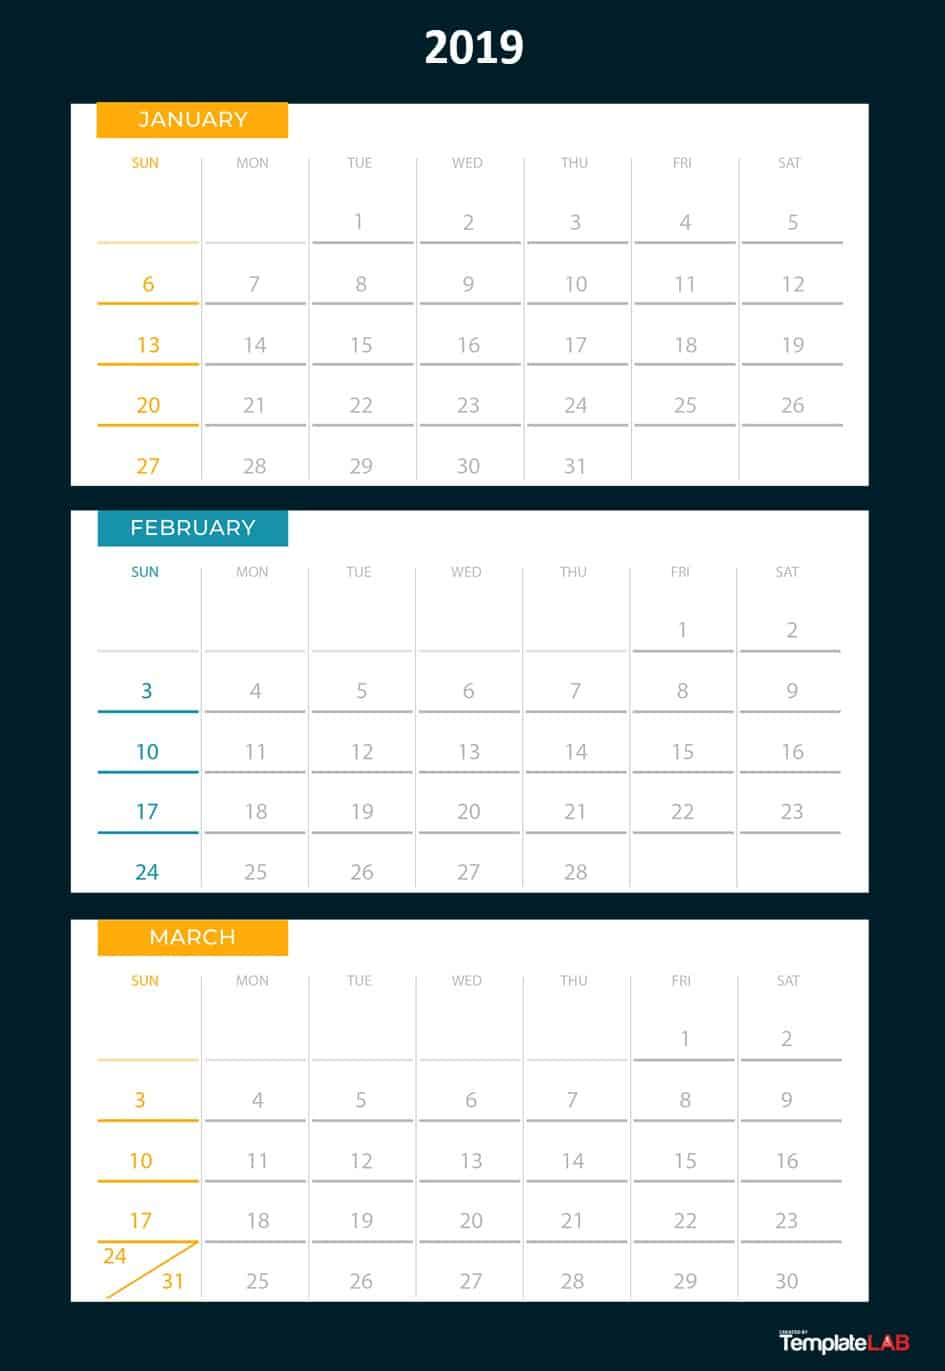 [%2019 Printable Calendars [Monthly, With Holidays, Yearly] ᐅ|Blank Quarterly Calendar Template|Blank Quarterly Calendar Template%]